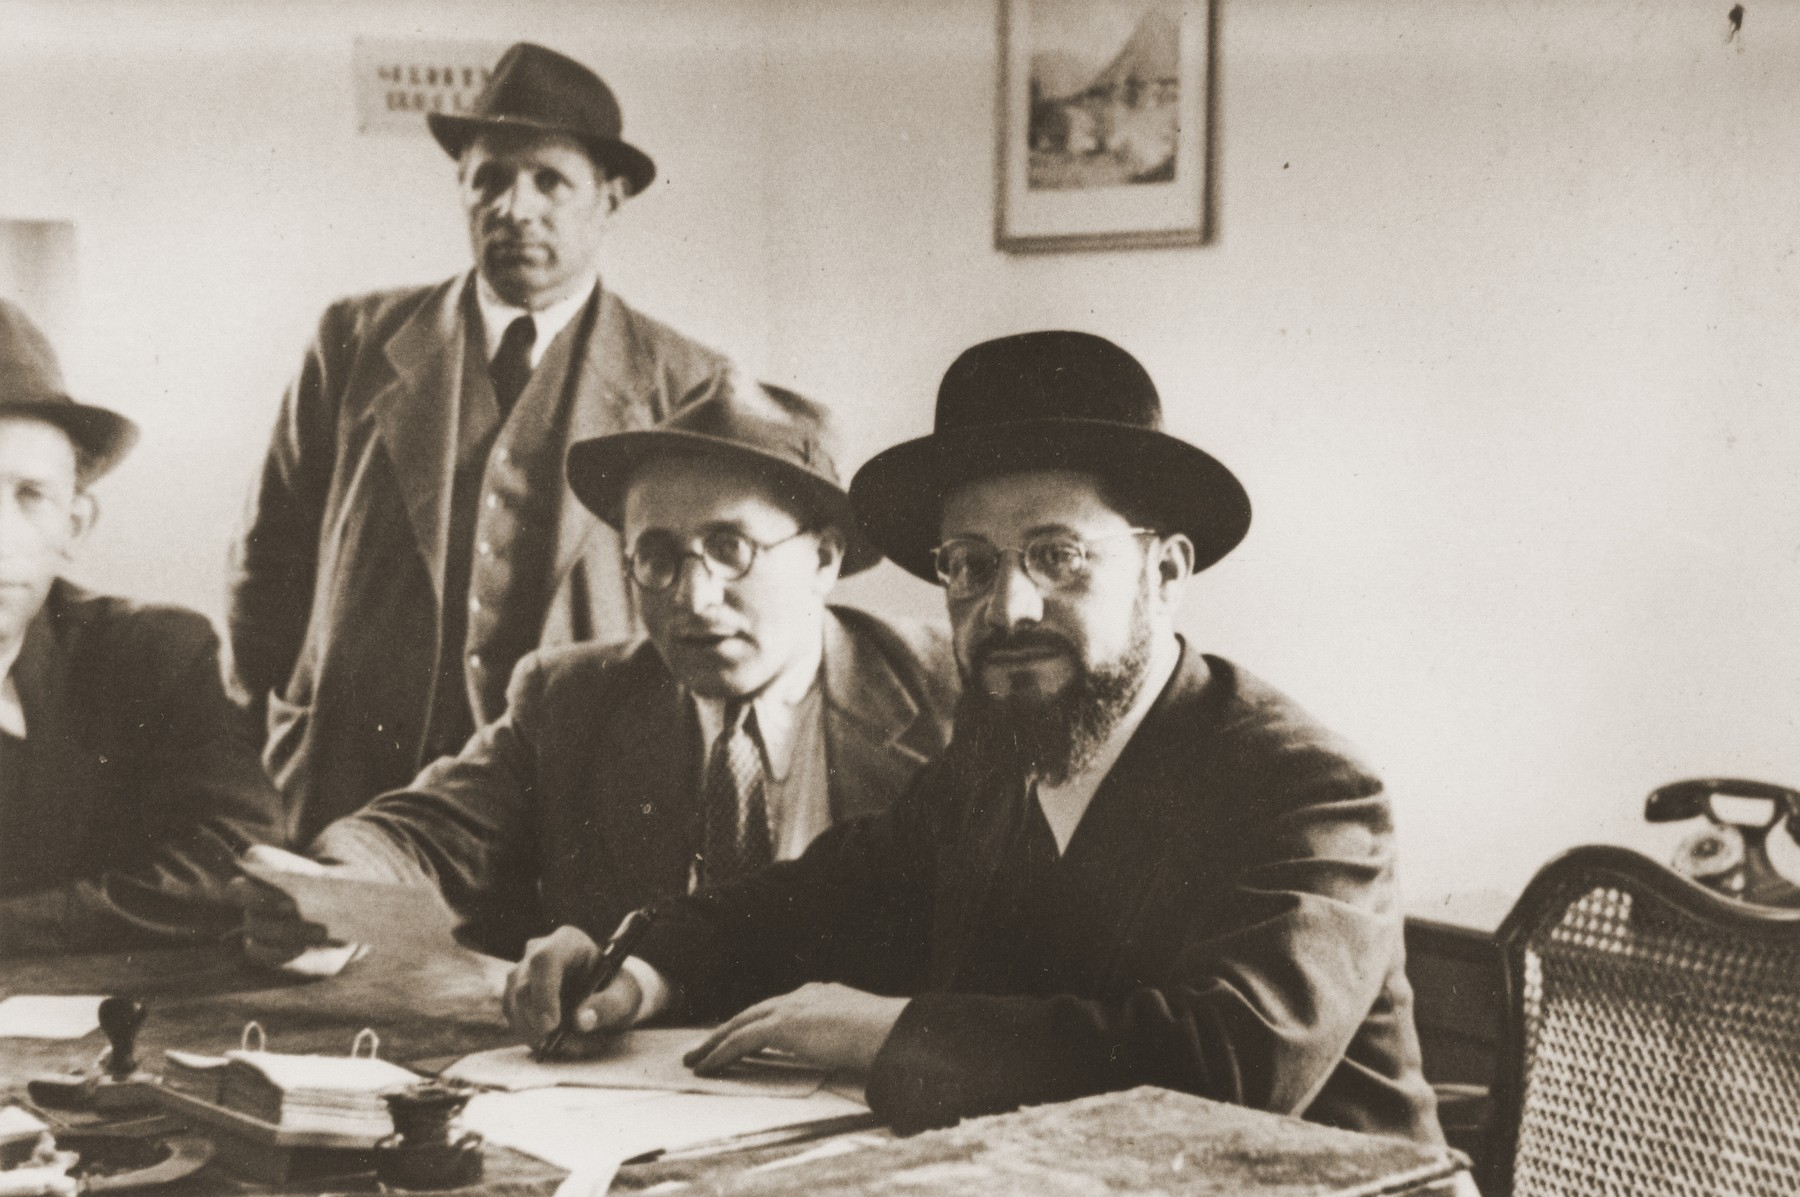 Chief Rabbi Lejzerowski (right) meets with other rabbis in the Landsberg displaced persons camp.